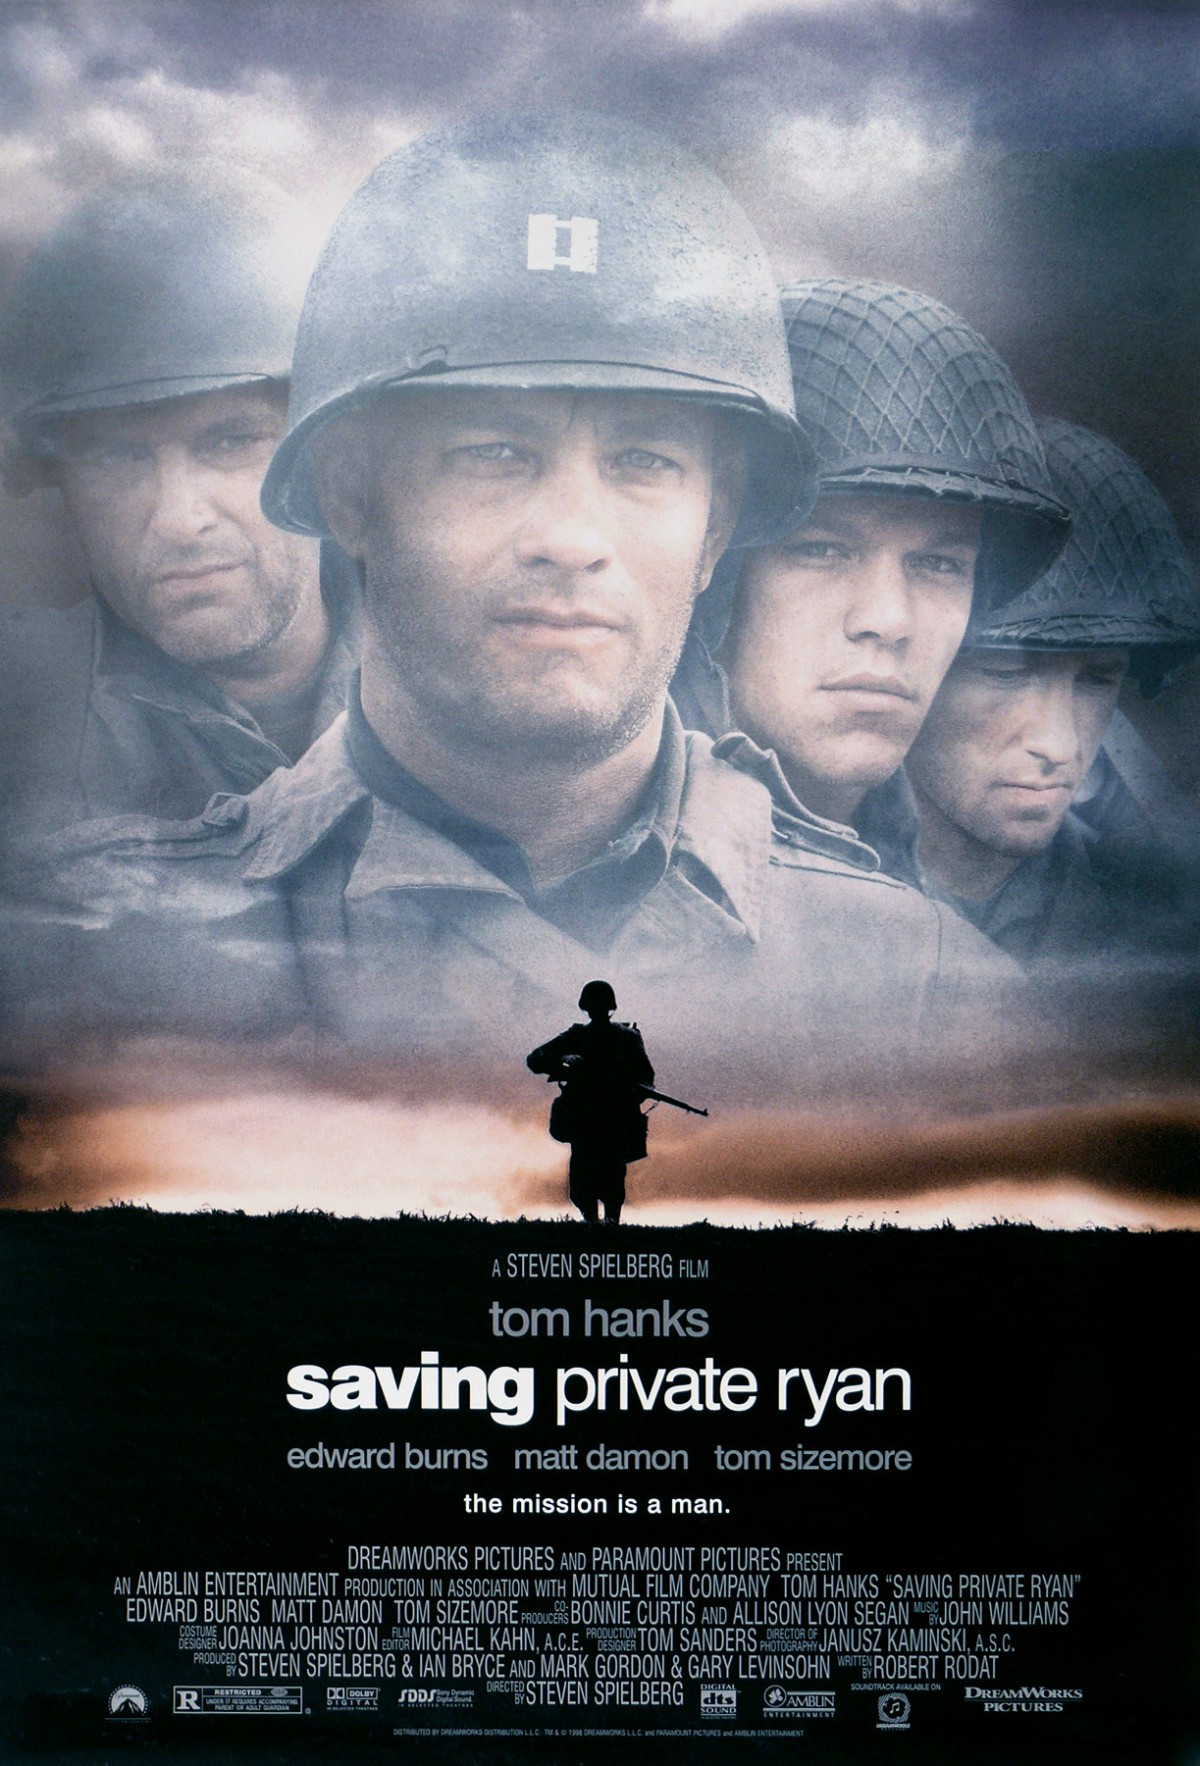 98. Saving Private Ryan (1998)